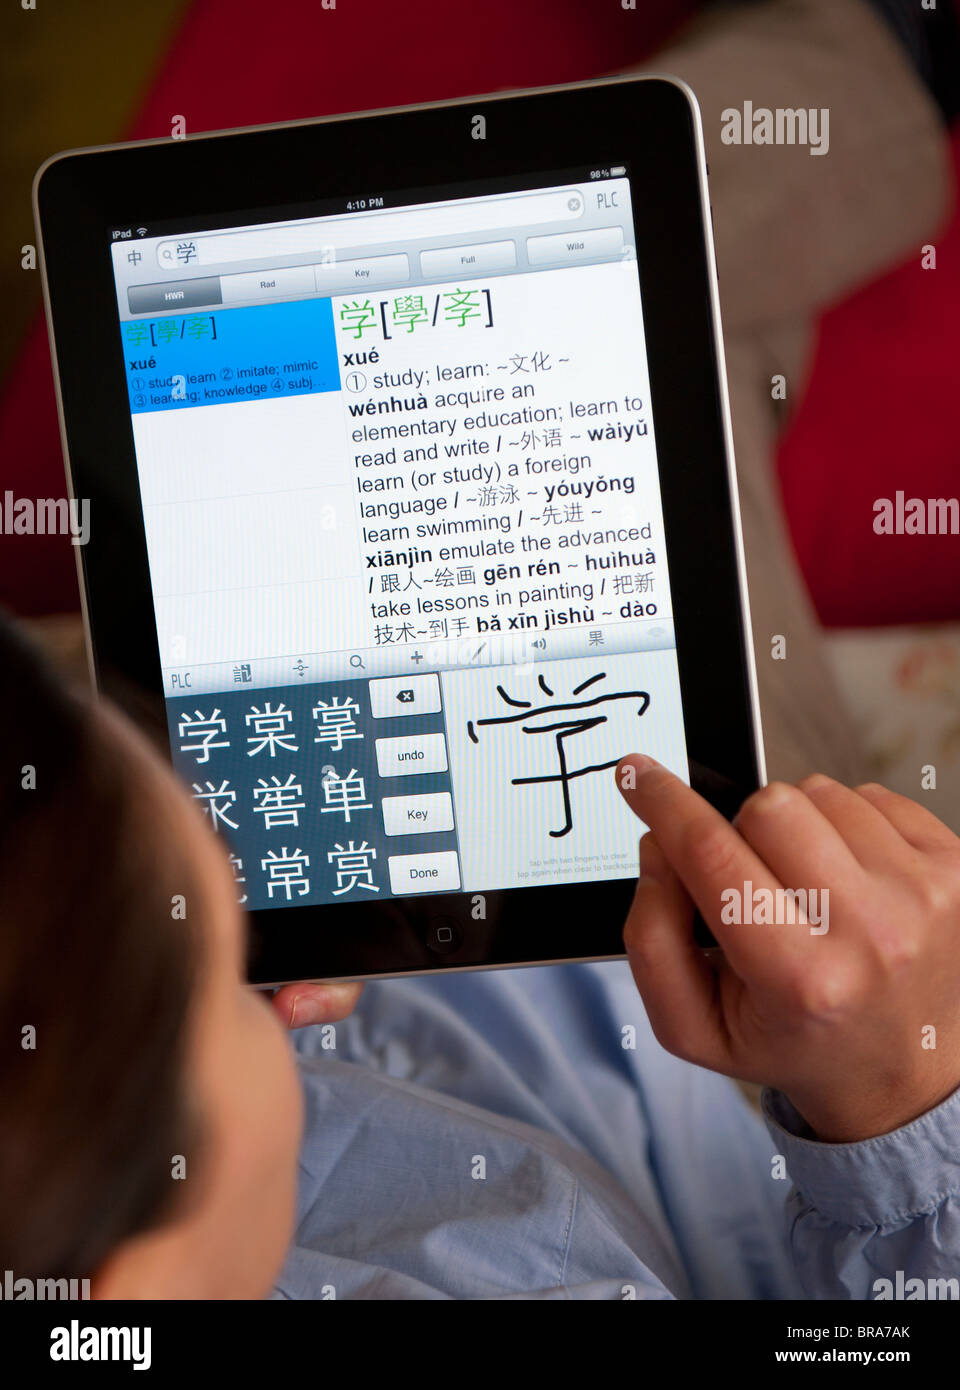 Female student learning mandarin Chinese using education application on iPad tablet computer - Stock Image